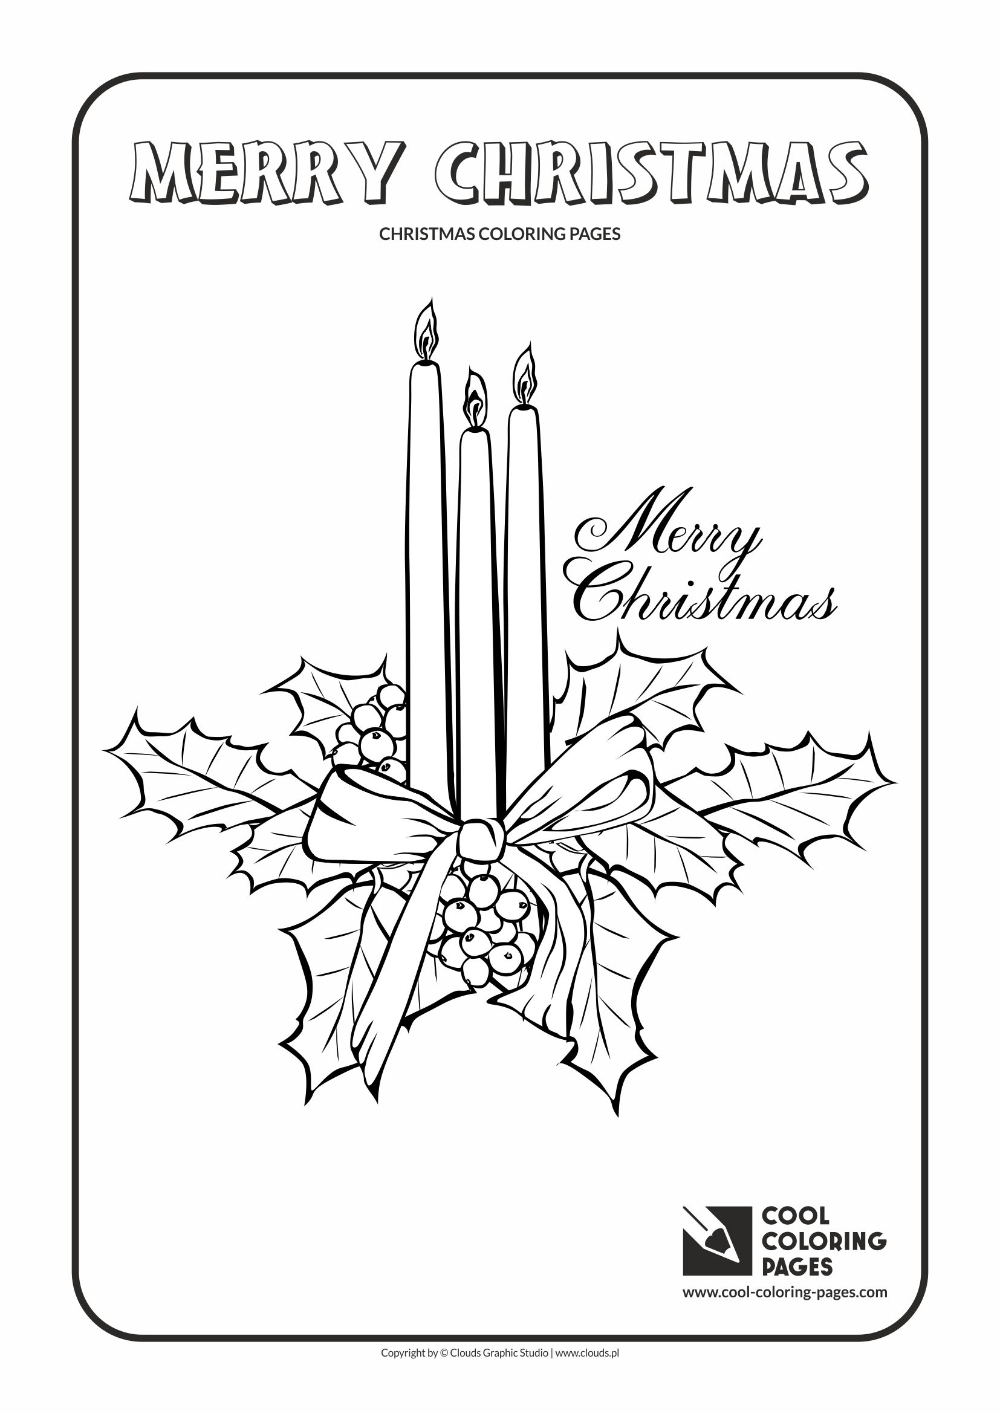 Cool Coloring Pages Christmas candles coloring page - Cool ...